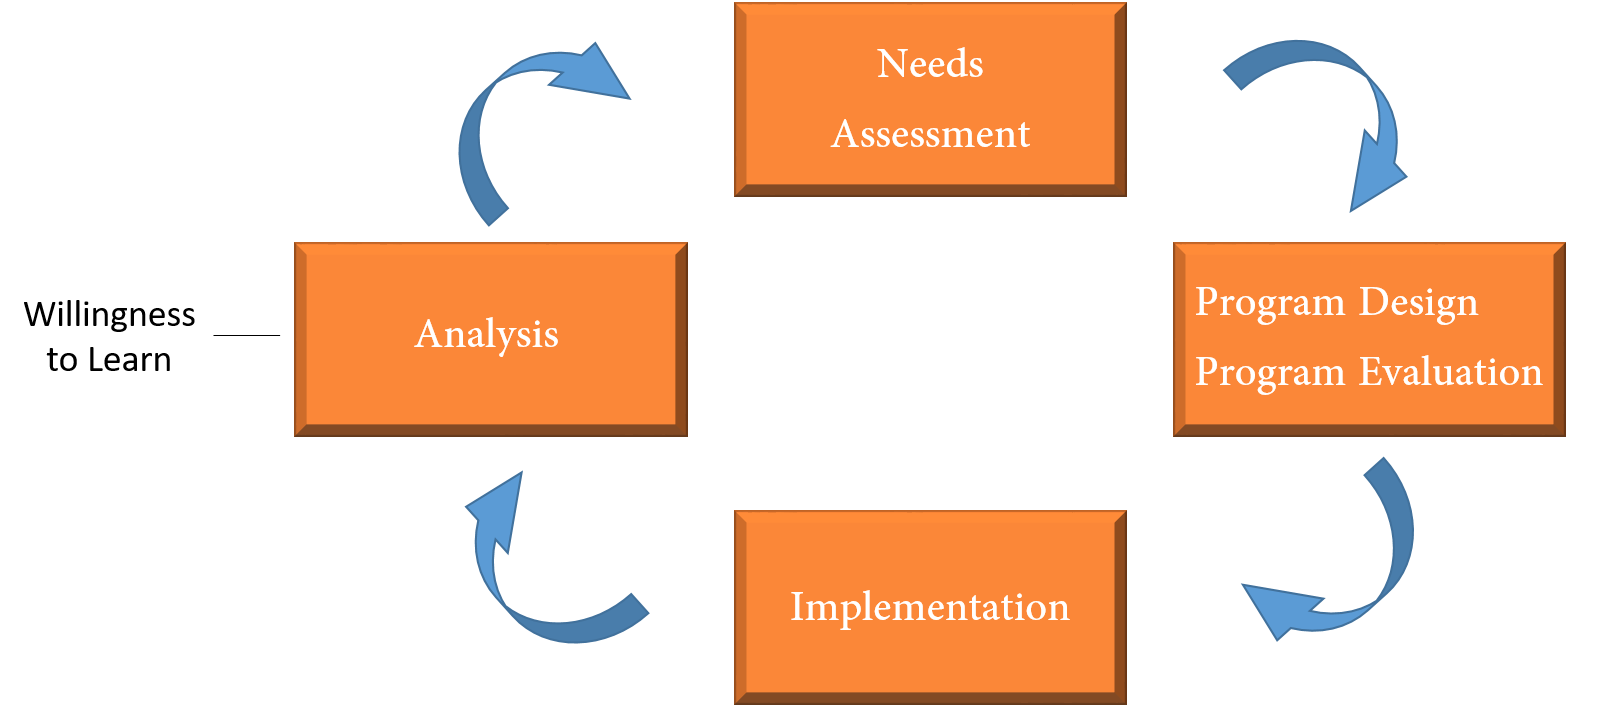 week c organizations and theories of change learning following this point program and evaluation need to be conceptualized hand in hand we want to get from point a to point b not start from point a then